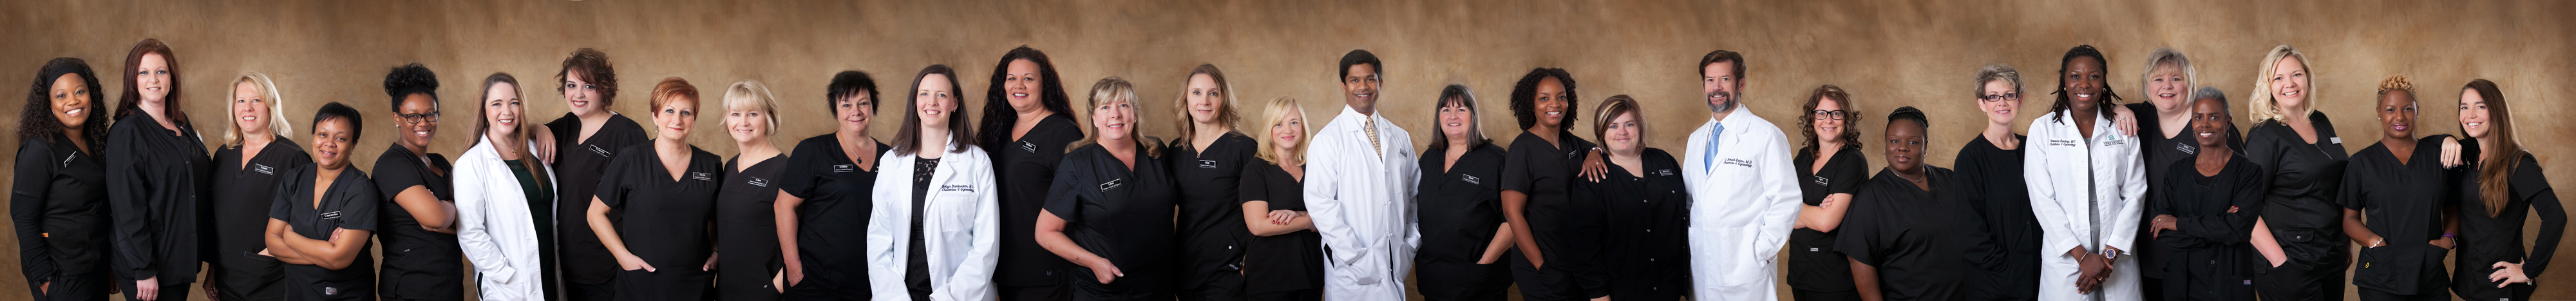 OB/GYN, Obstetrics & Gynecology services in Augusta, GA.